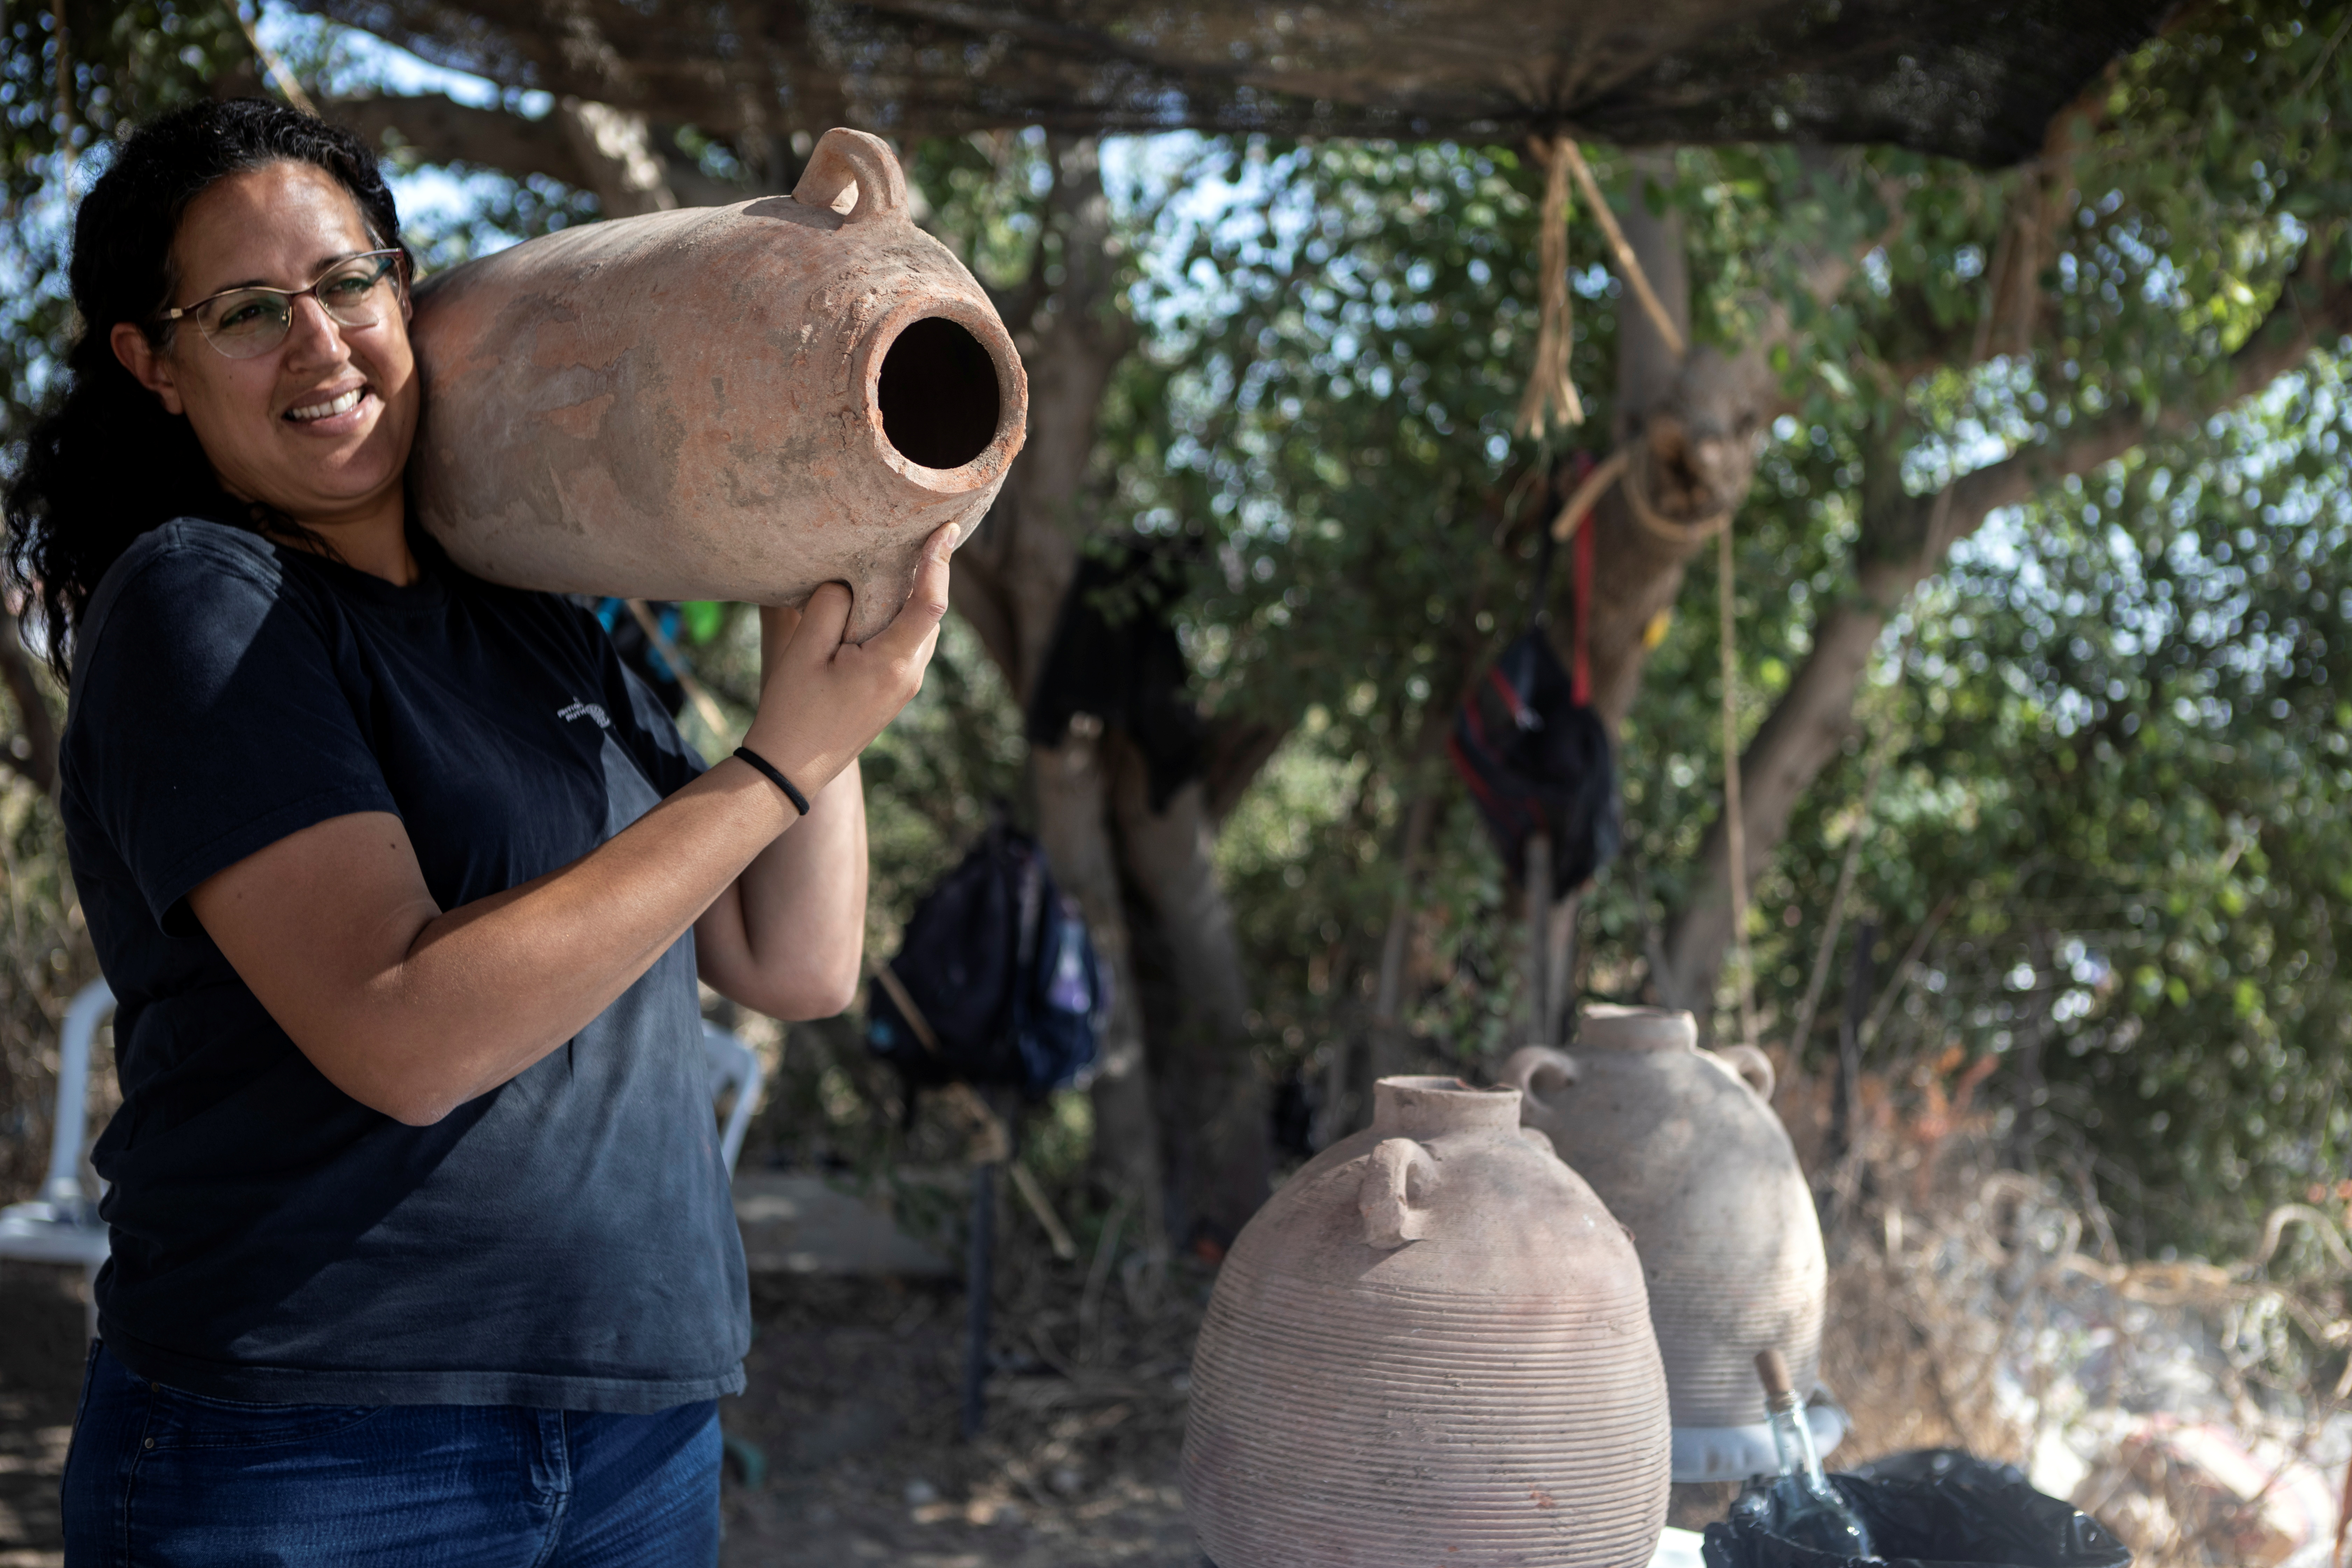 Liat Nadav-Ziv, one of the directors of the excavation of a 1500-year-old Byzantine winery on behalf of the Israel Antiquities Authority, carries a Gaza Jar in Yavne, Israel October 11, 2021. REUTERS/Nir Elias